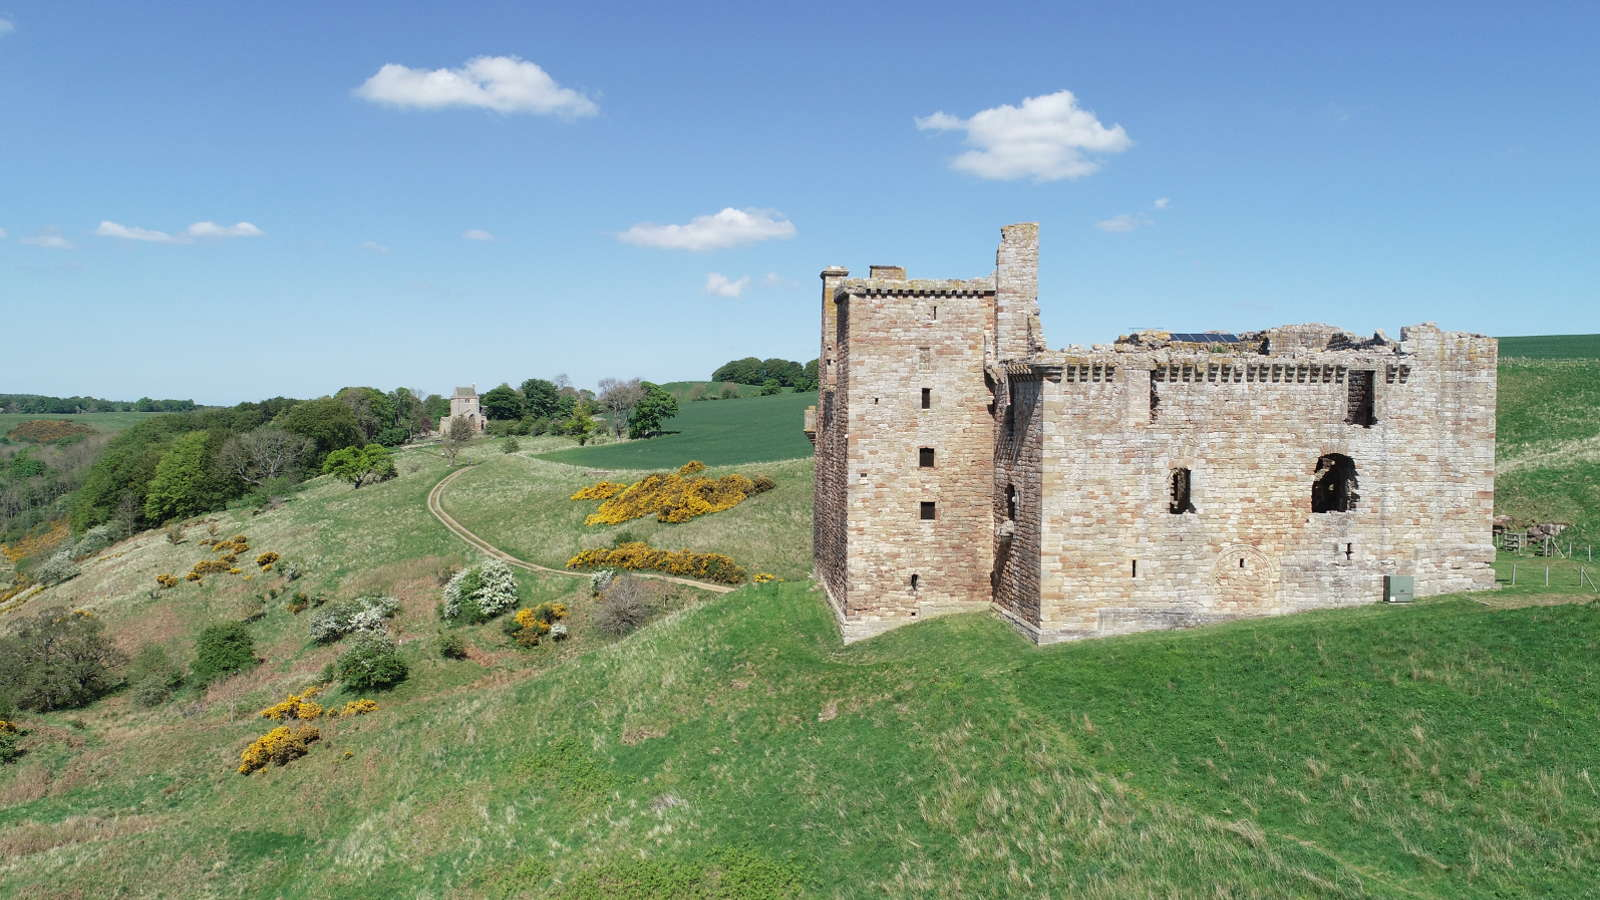 Aerial image of an historic structure - Crichton Castle